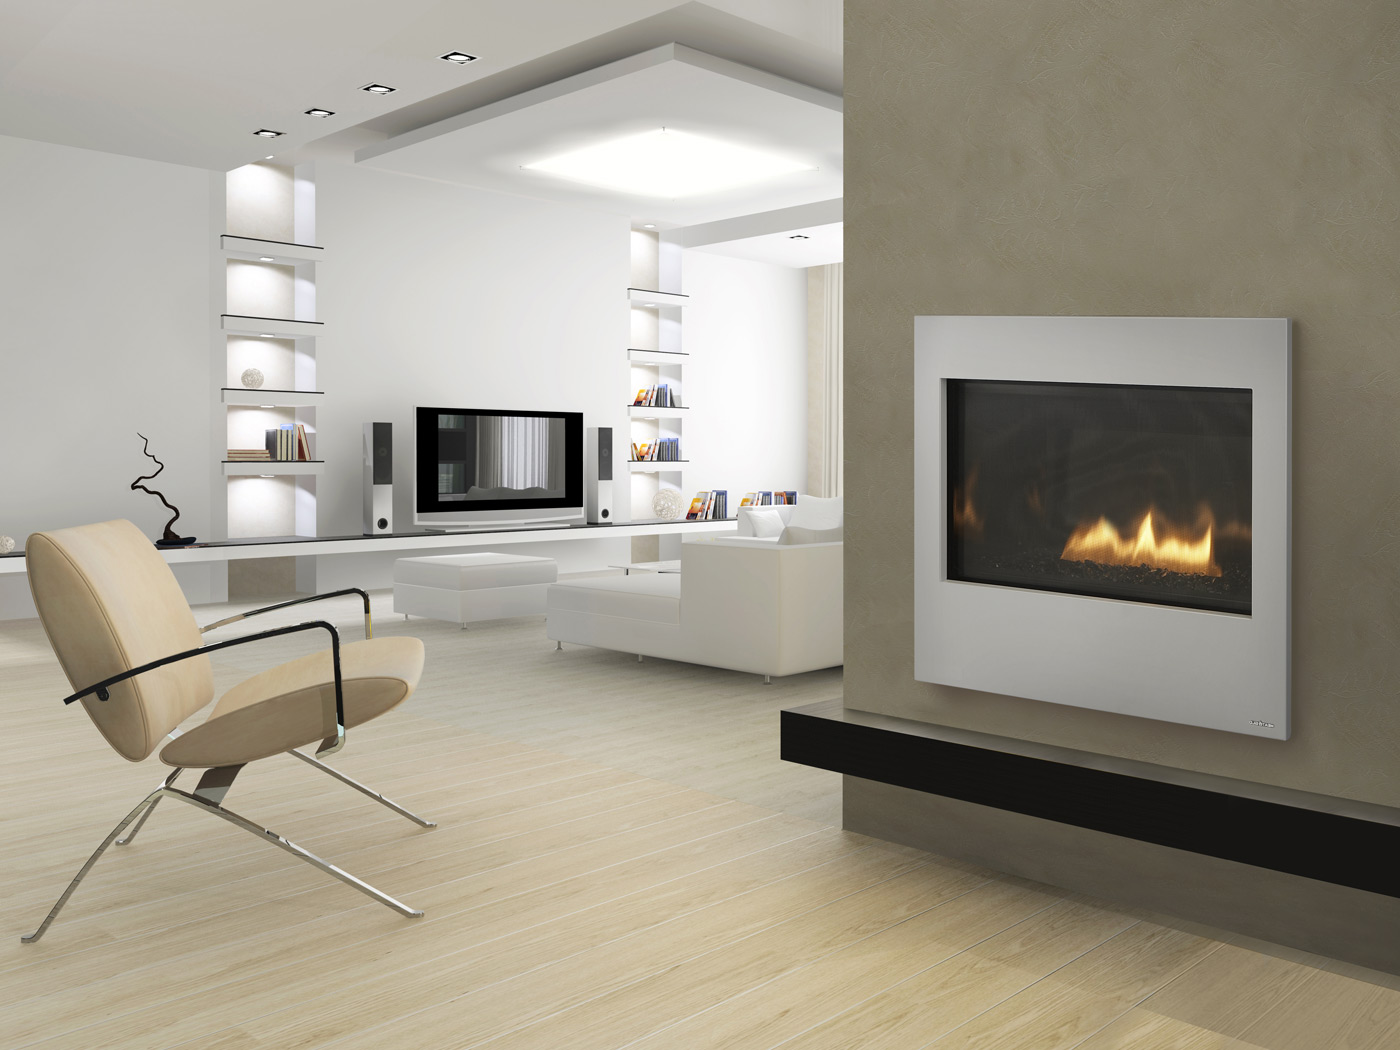 fireplaces gas fireplace luxury lifestyle design